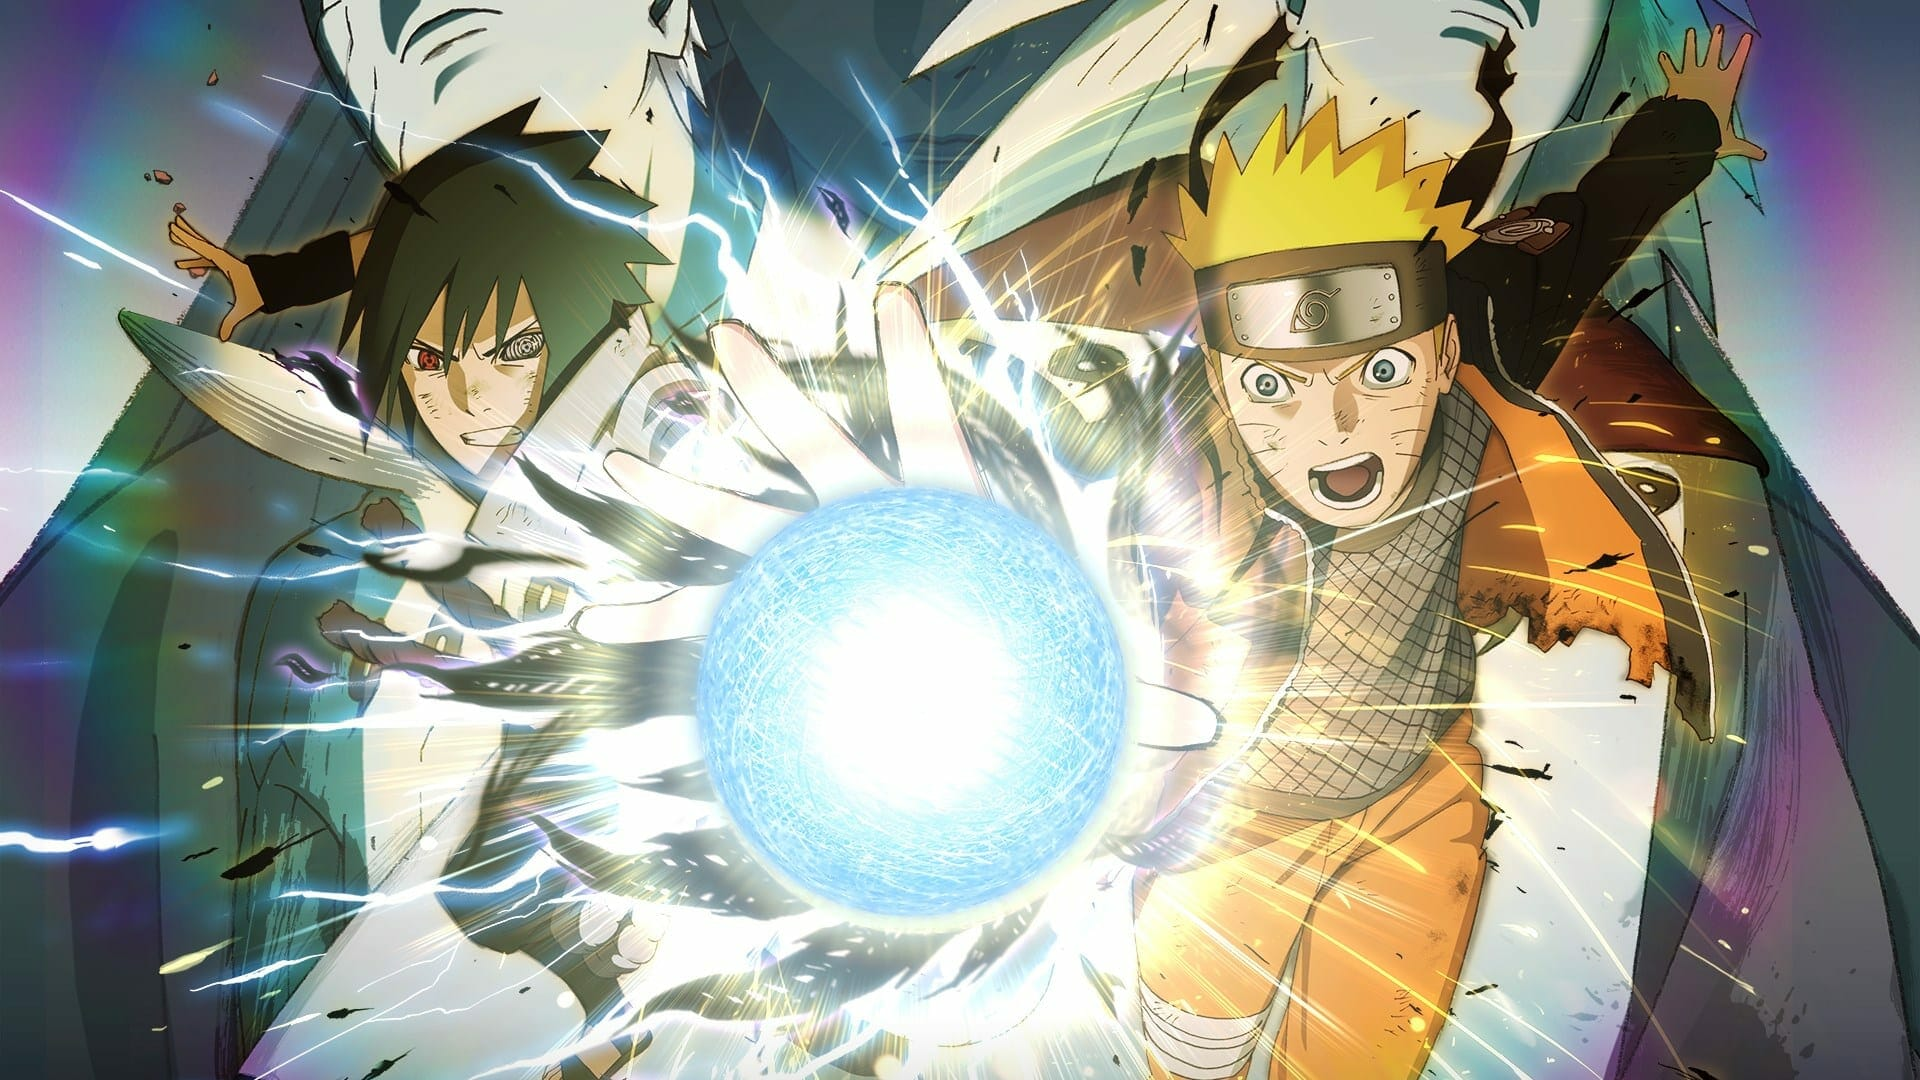 Naruto Shippuden: Ultimate Ninja Storm 4 Pre-Order for Switch Available